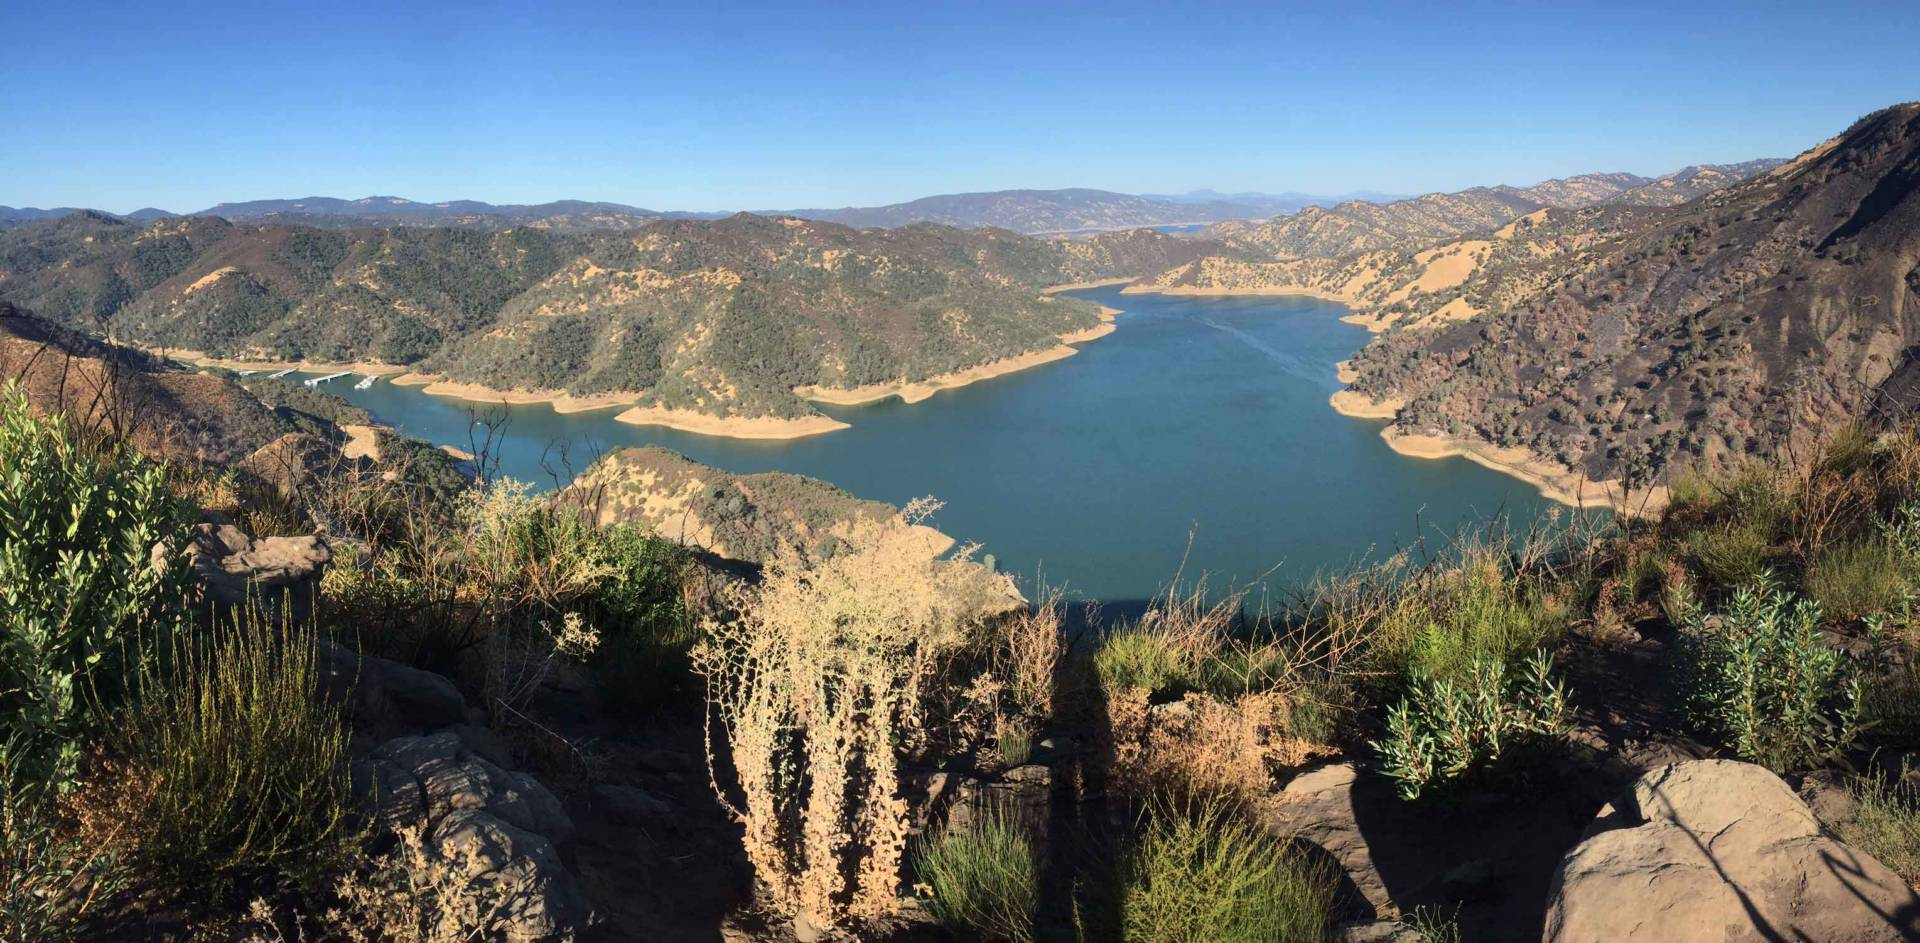 Lake Berryessa in Napa County is a reservoir formed behind the Monticello Dam. Lindsey Hoshaw/KQED